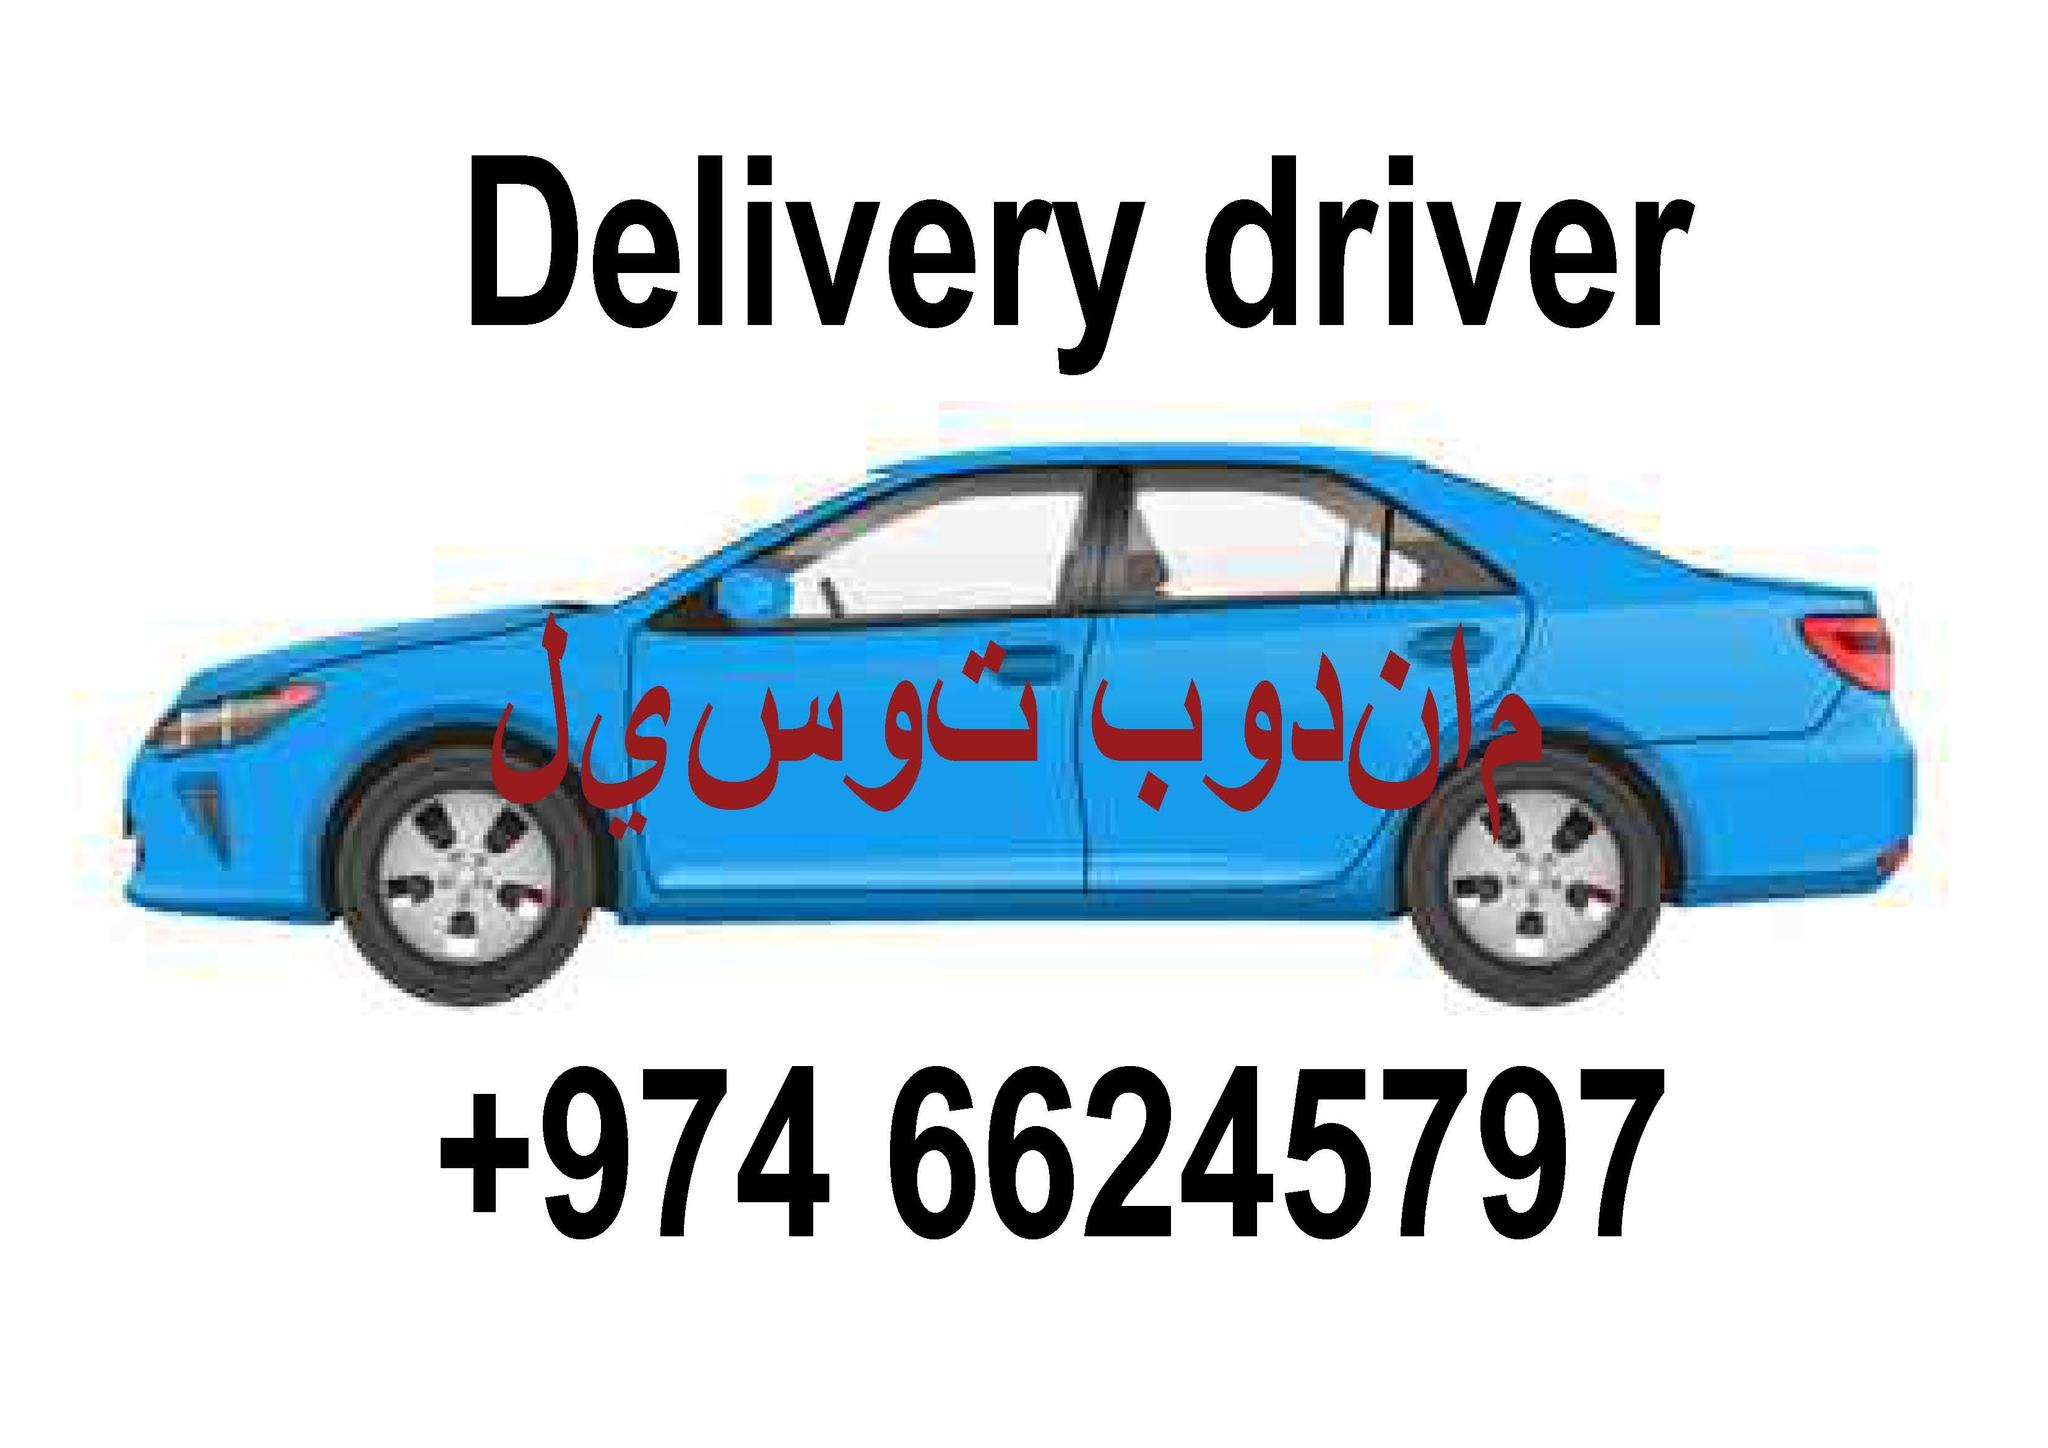 Mandhup/Thouseel  Delivery services call 66245797